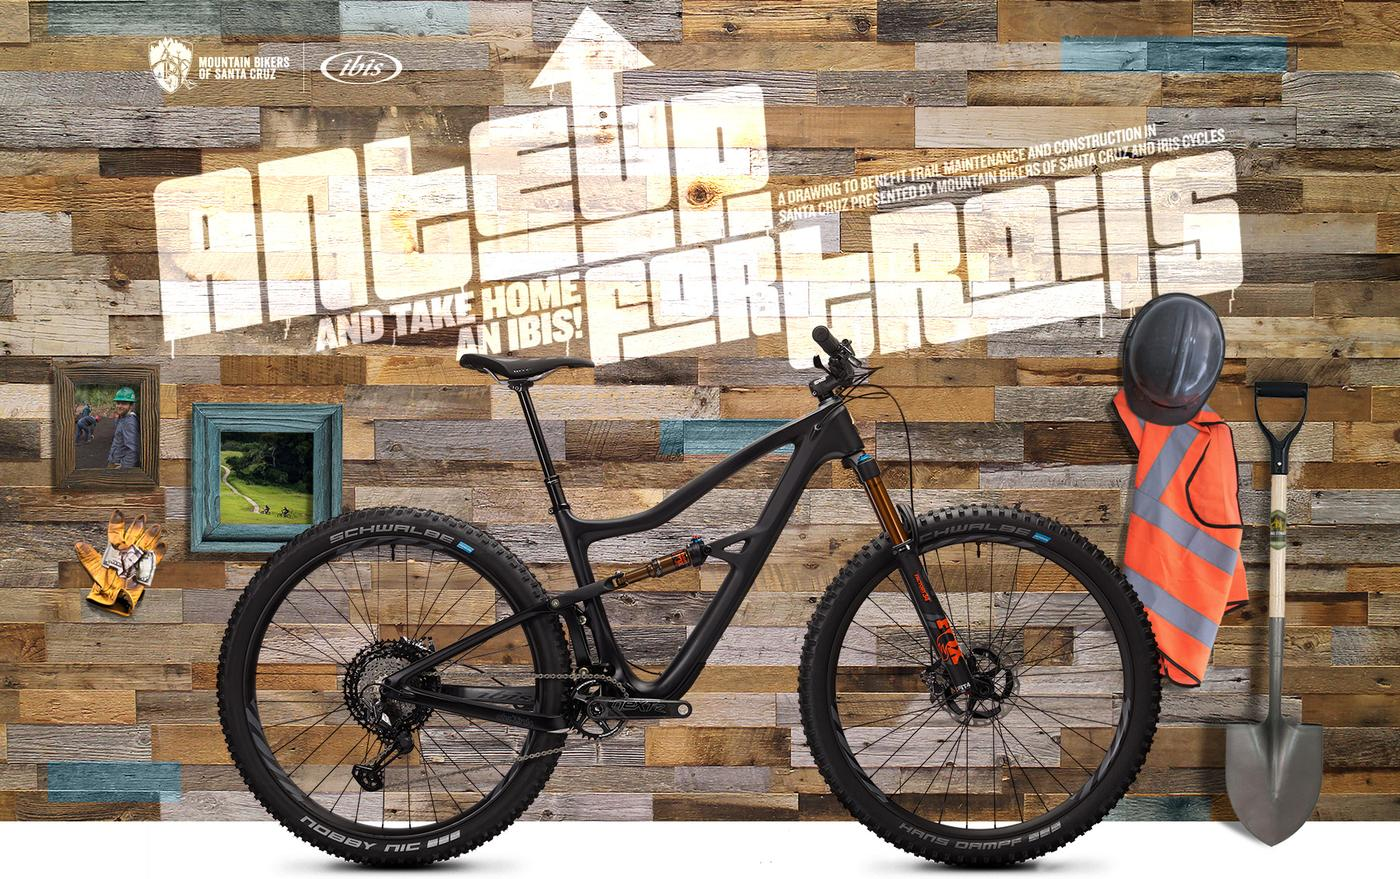 MBOSC is Getting Their Ante Up for Trails: Donate $5 to Support Trails & Win an Ibis!